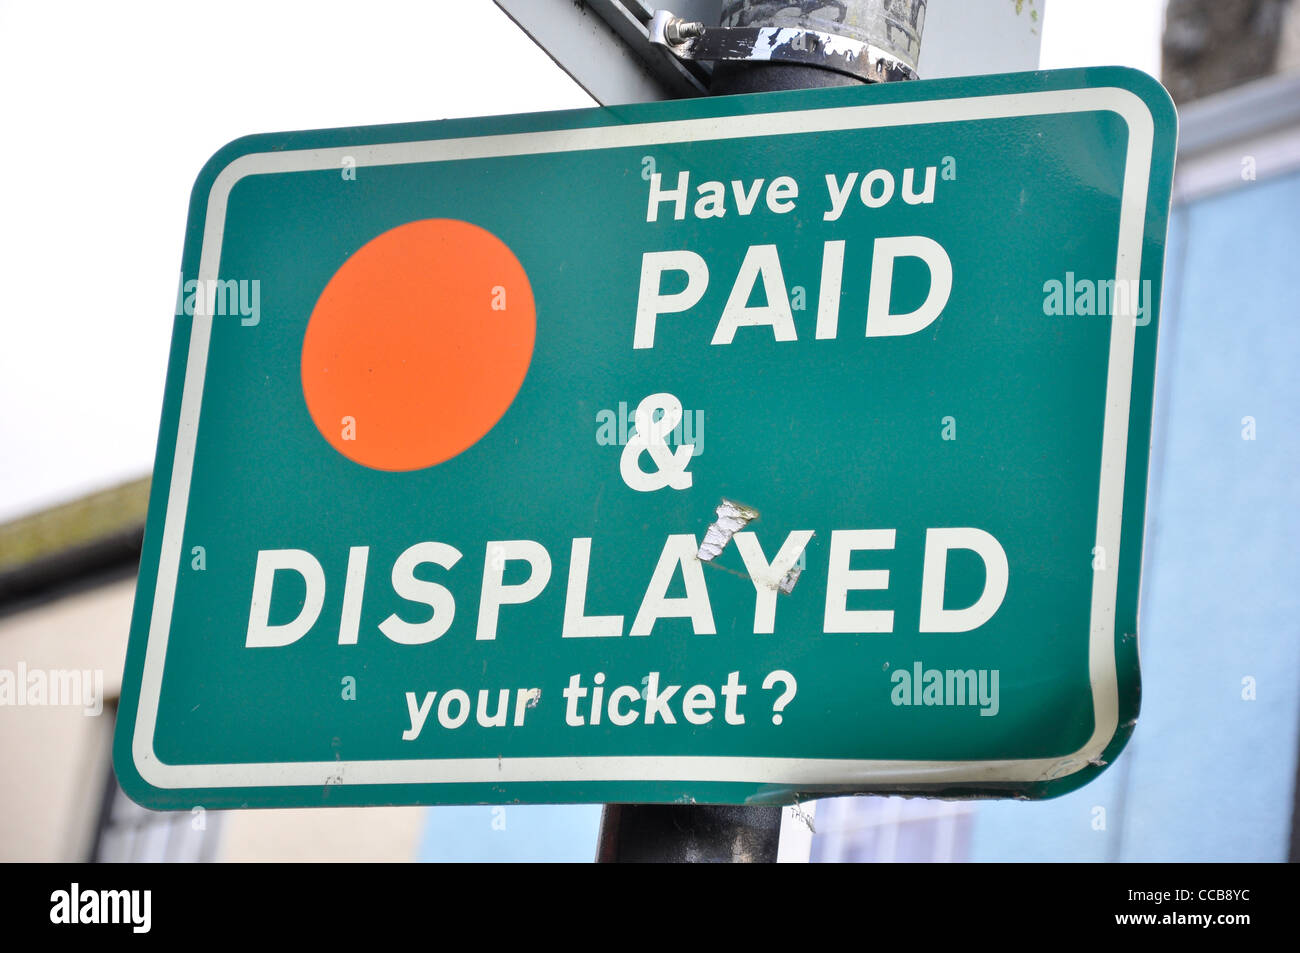 Pay and display car parking charges reminder sign. - Stock Image